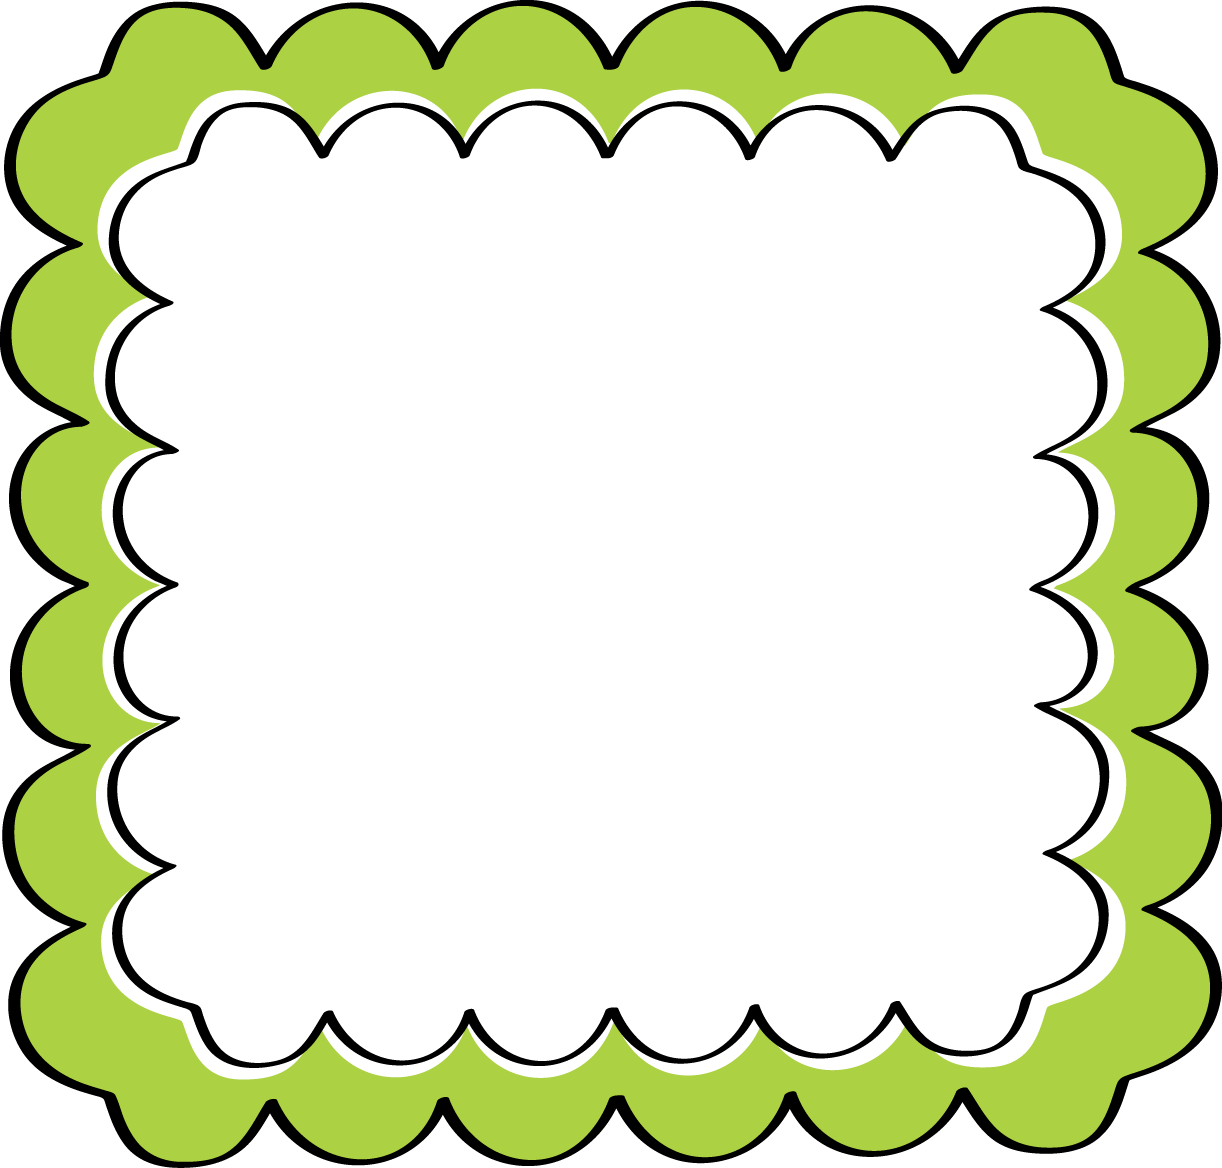 School theme border green. Surprise clipart banner